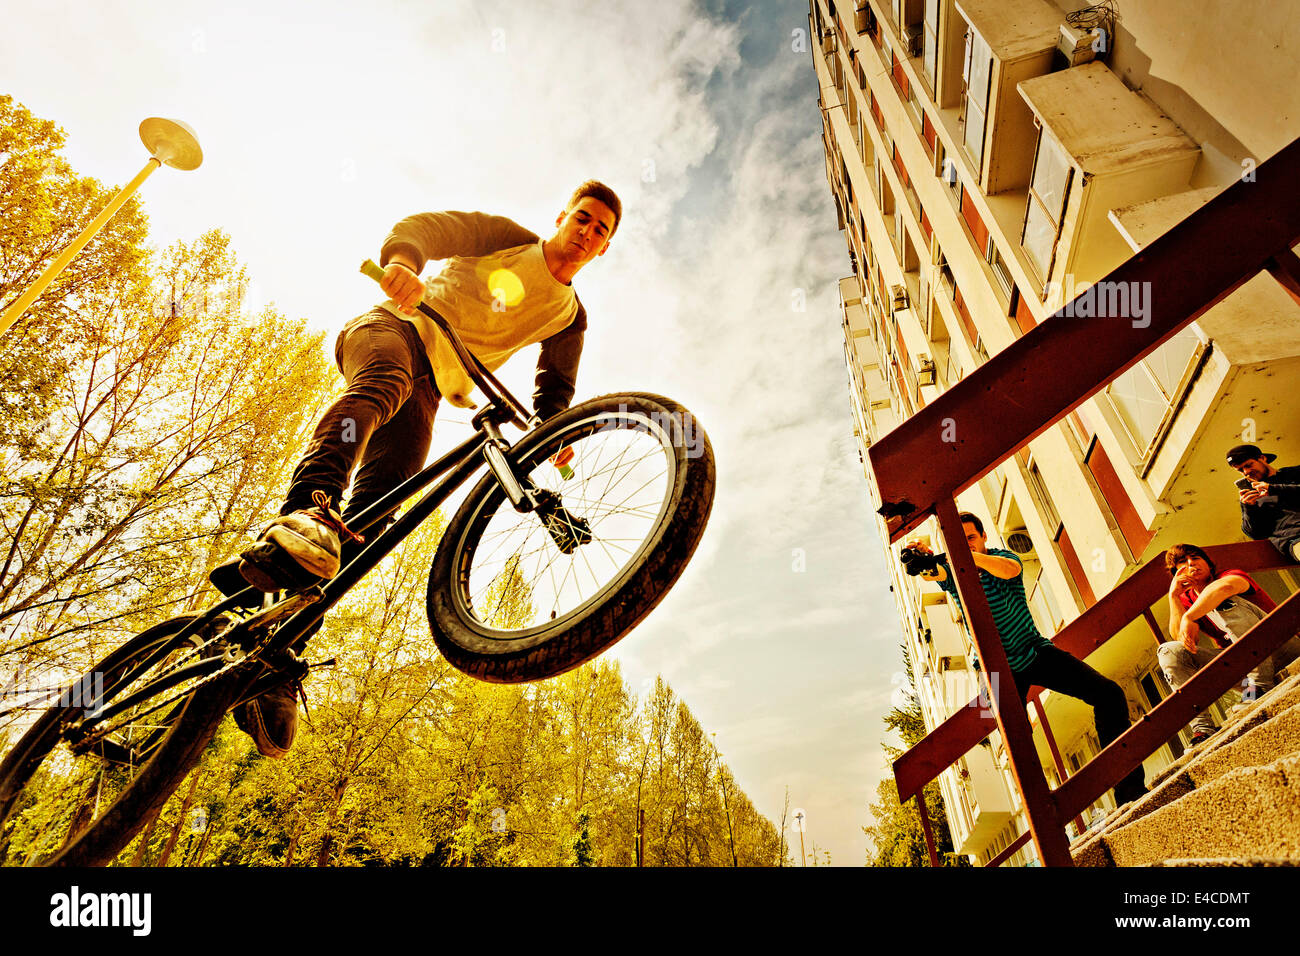 BMX biker performing a stunt over a railing - Stock Image